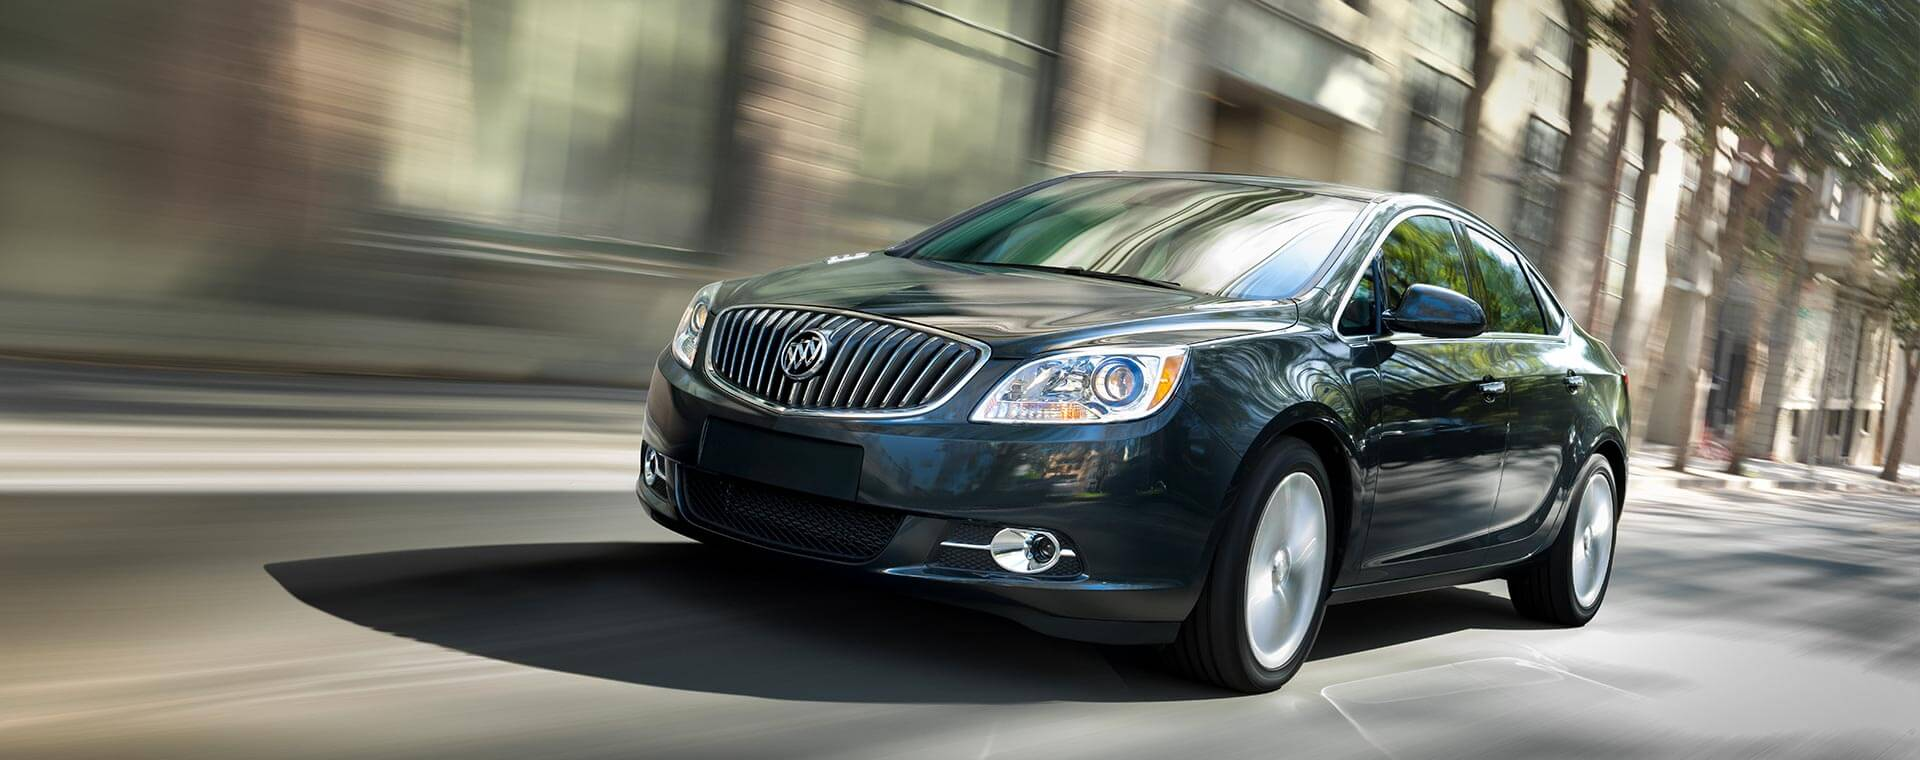 buick in avenir motors made general new buicks moneybox the america crop concept sell will reveals promo chinese blogs